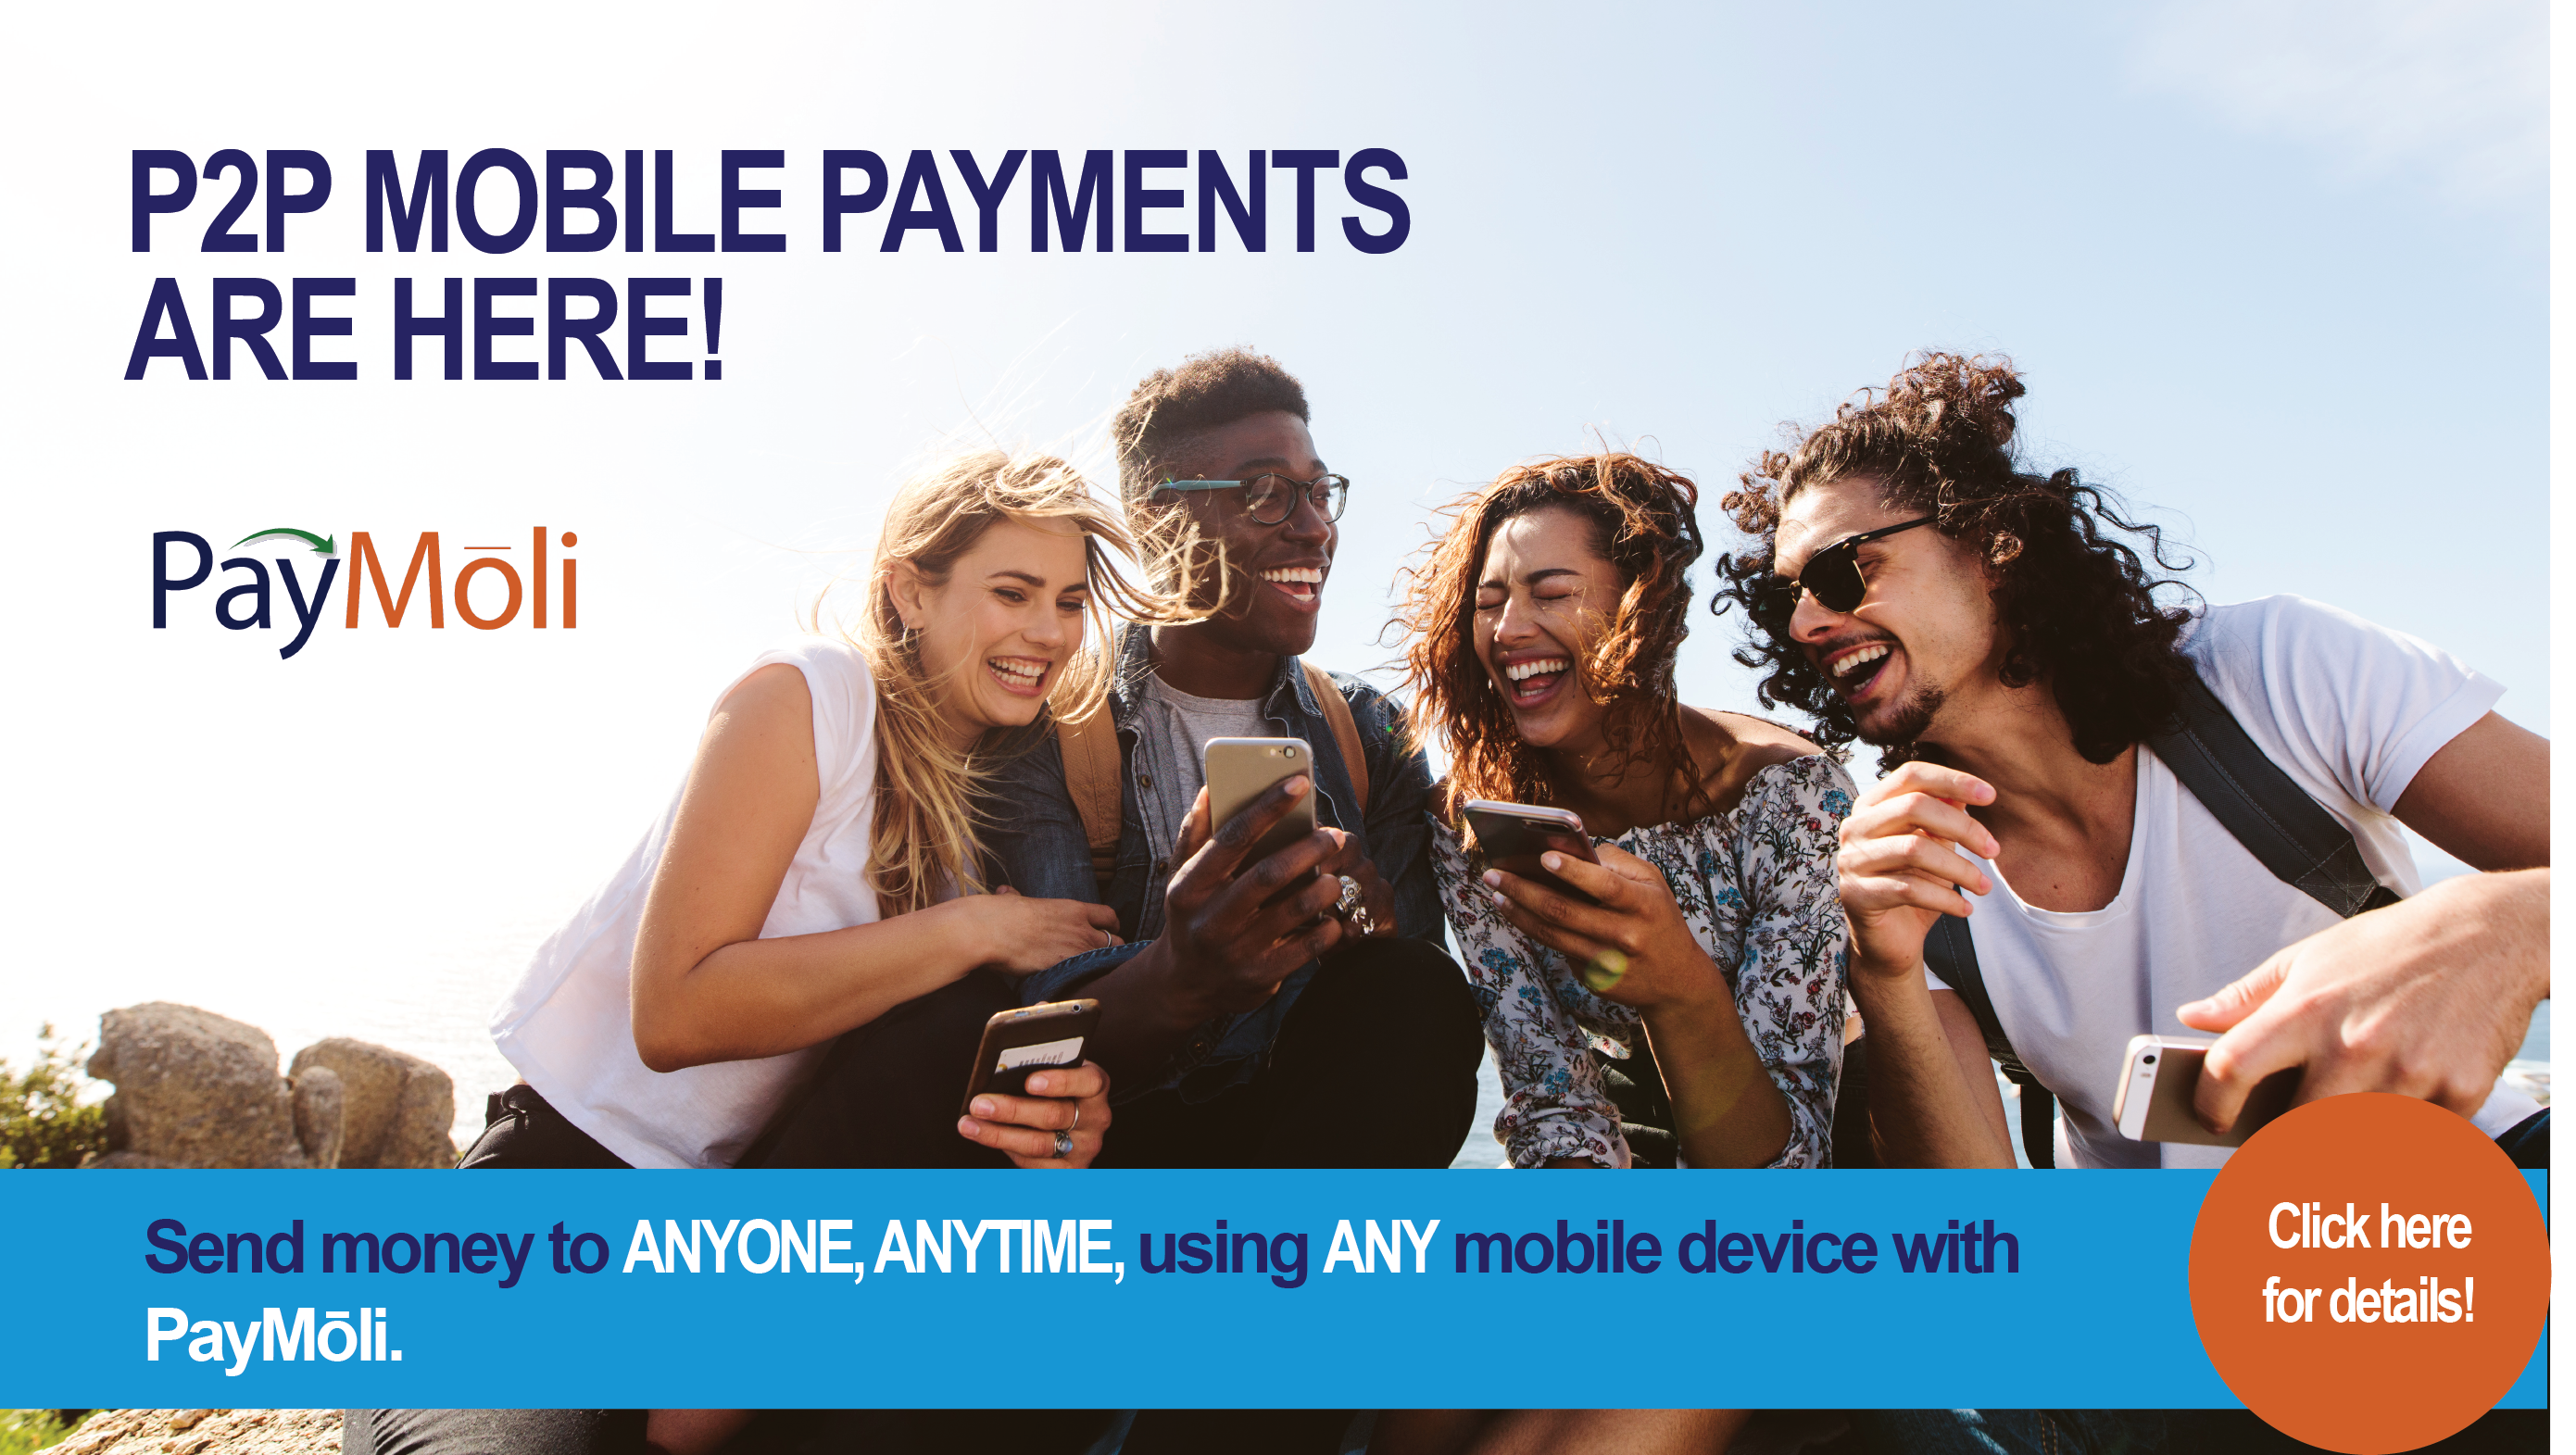 Send money to anyone, anytime, using any mobile device with PayMoli!